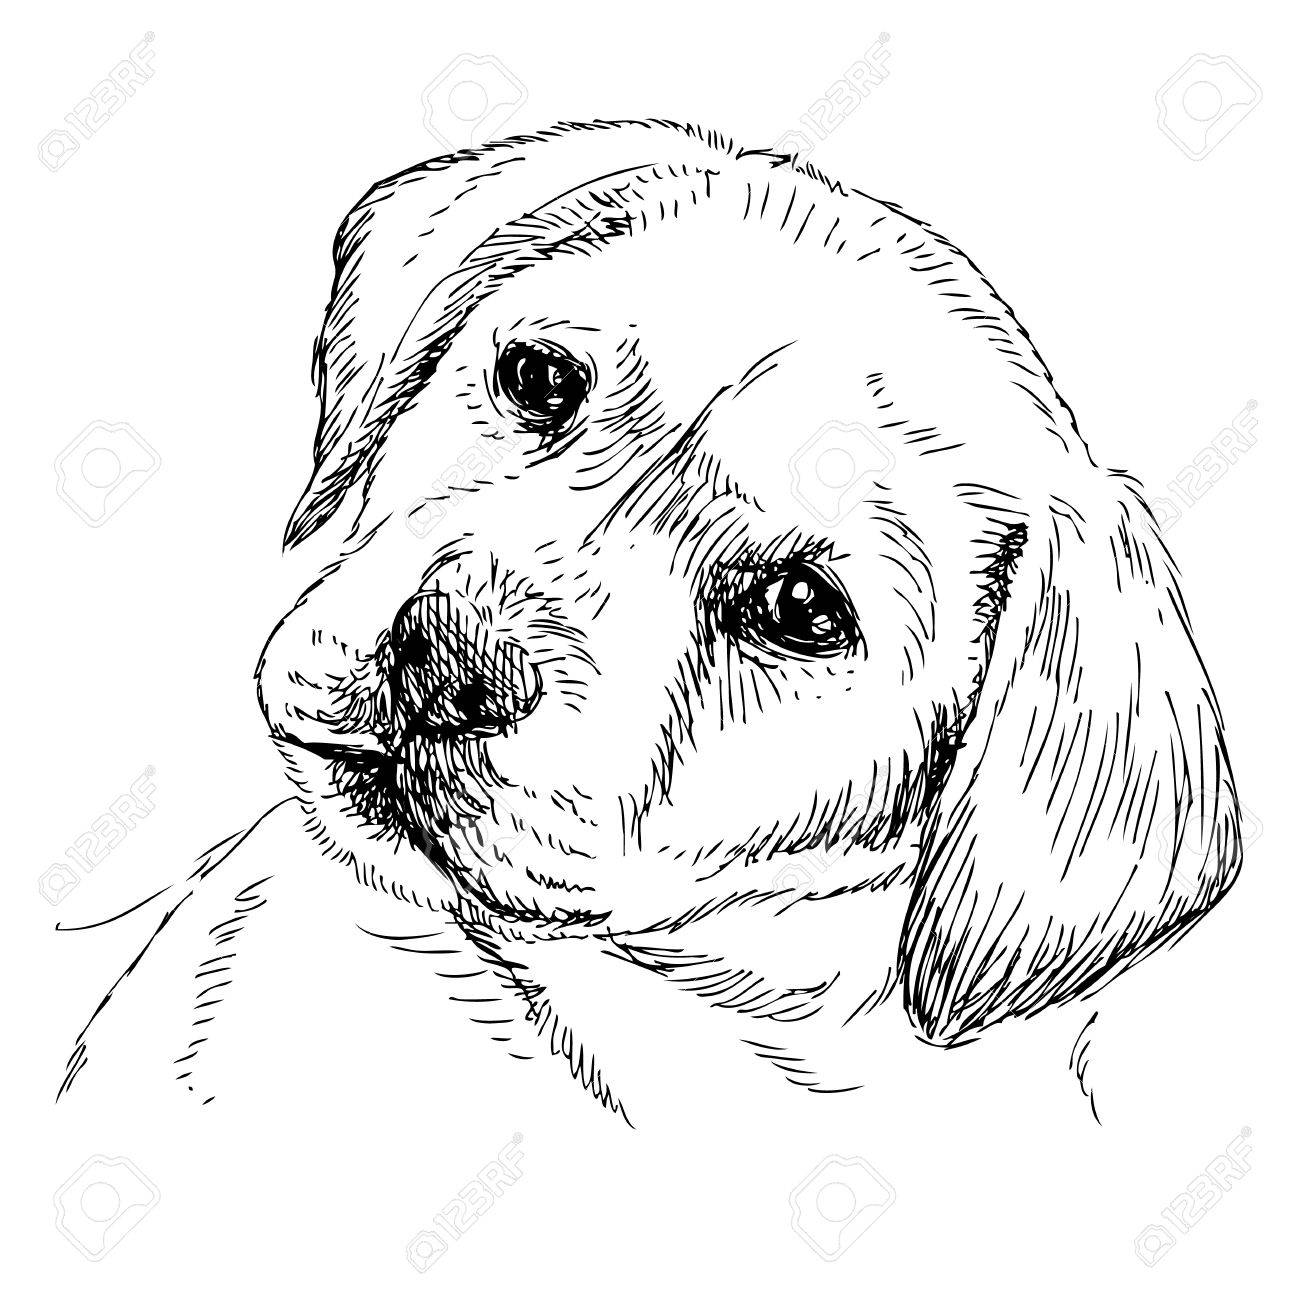 Image Of Labrador Retriever Puppy Hand Drawn Vector Royalty Free Cliparts Vectors And Stock Illustration Image 38900006